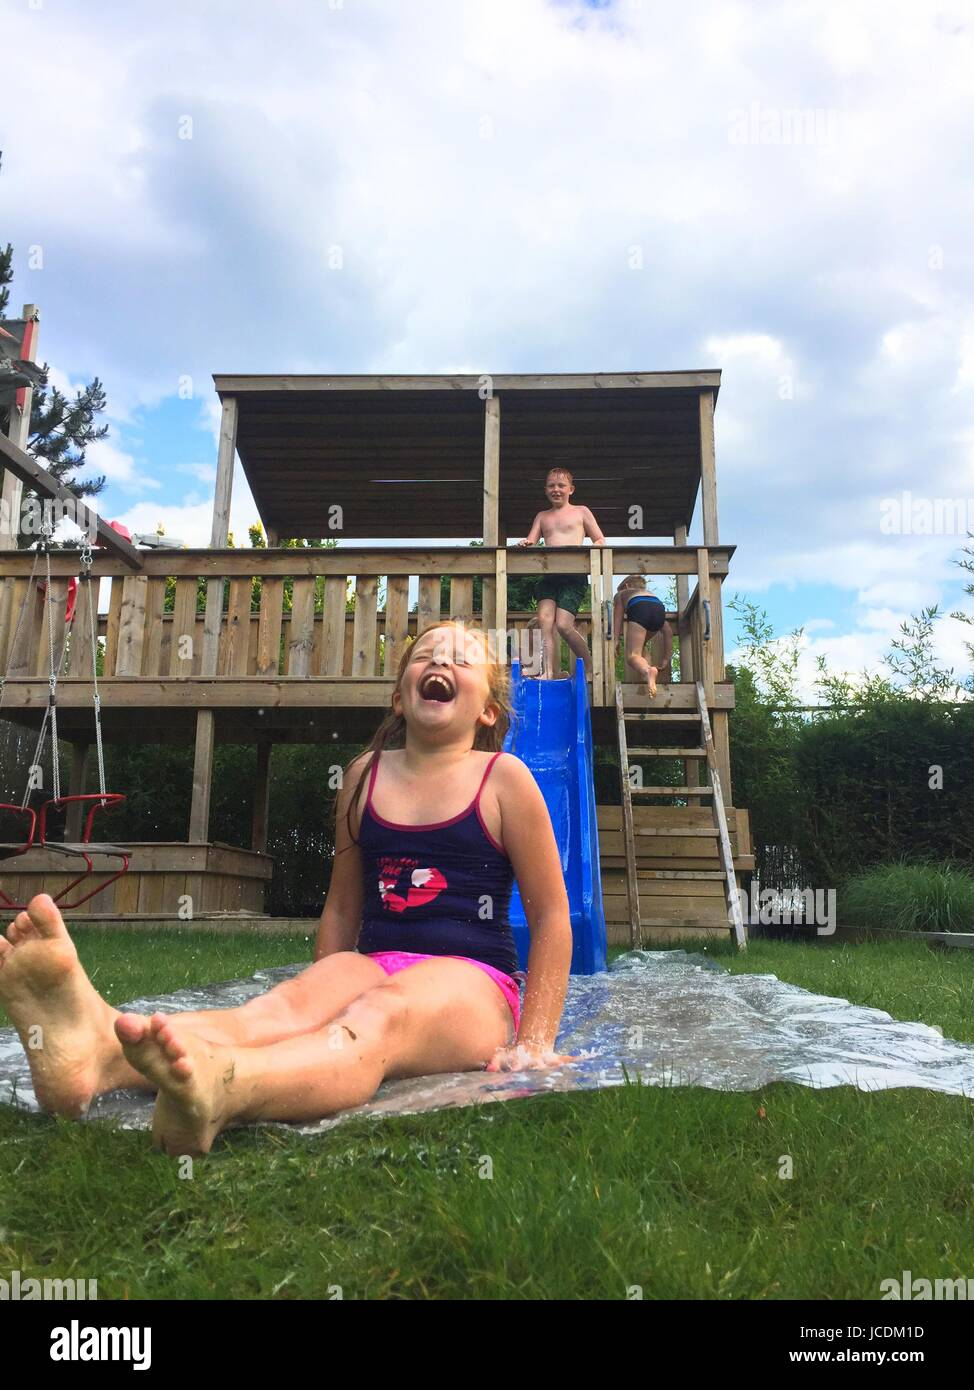 Children playing on a waterslide in the garden during summertime Stock Photo